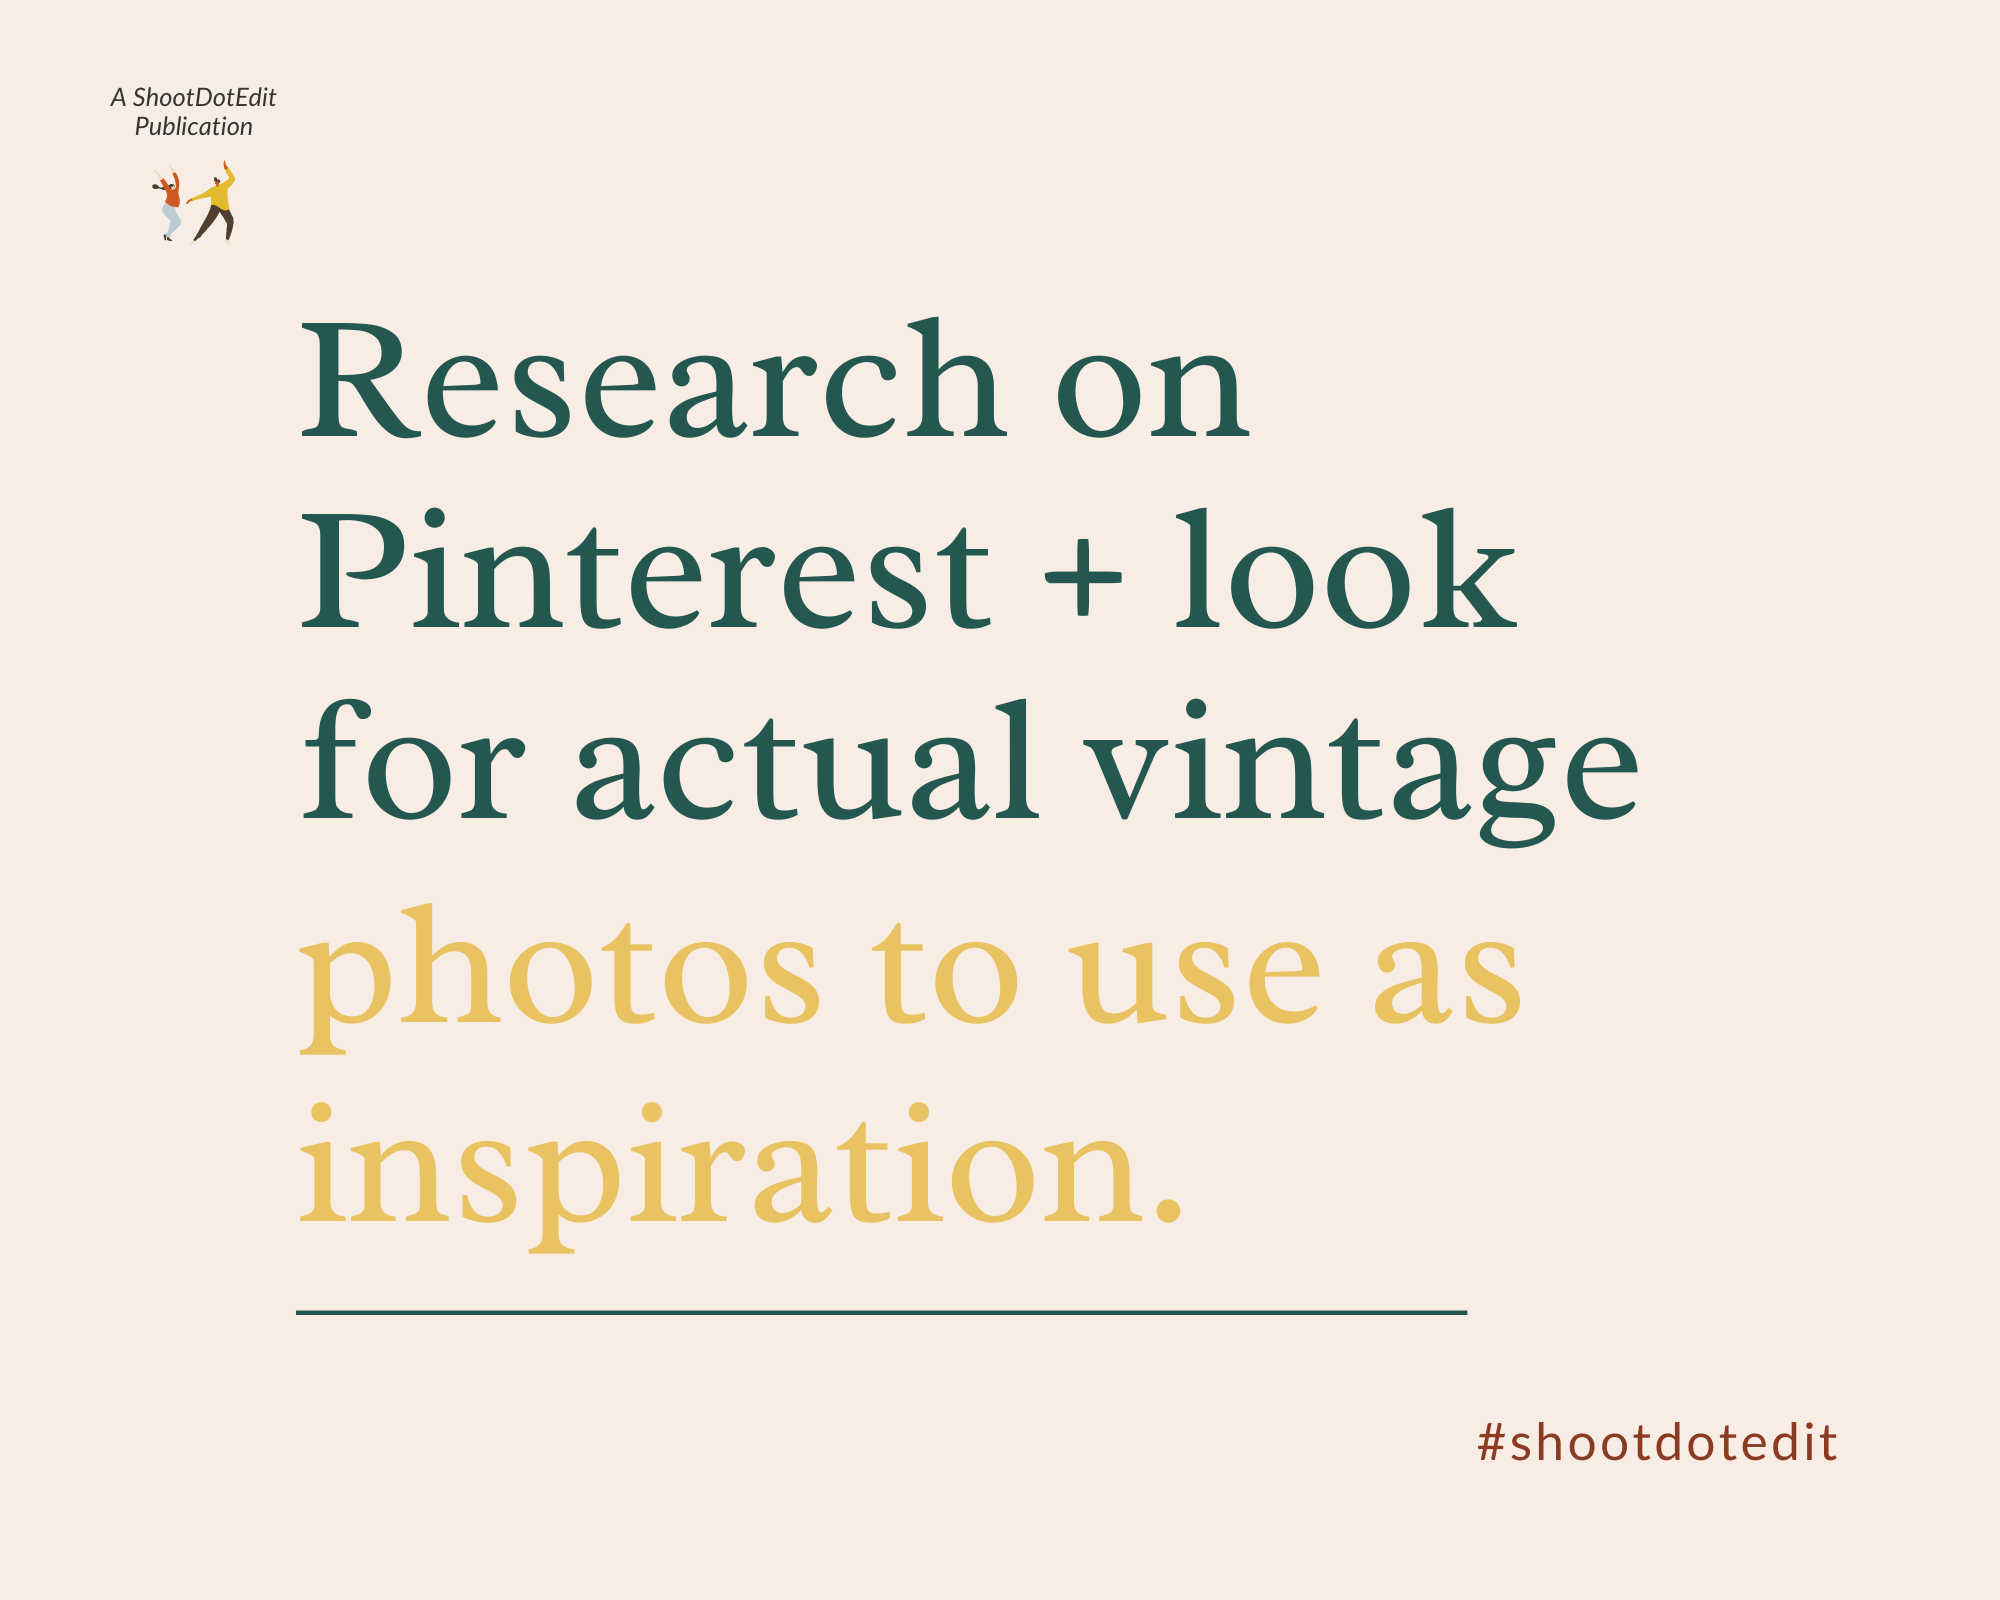 Infographic stating research on Pinterest and look for actual vintage photos to use as inspiration